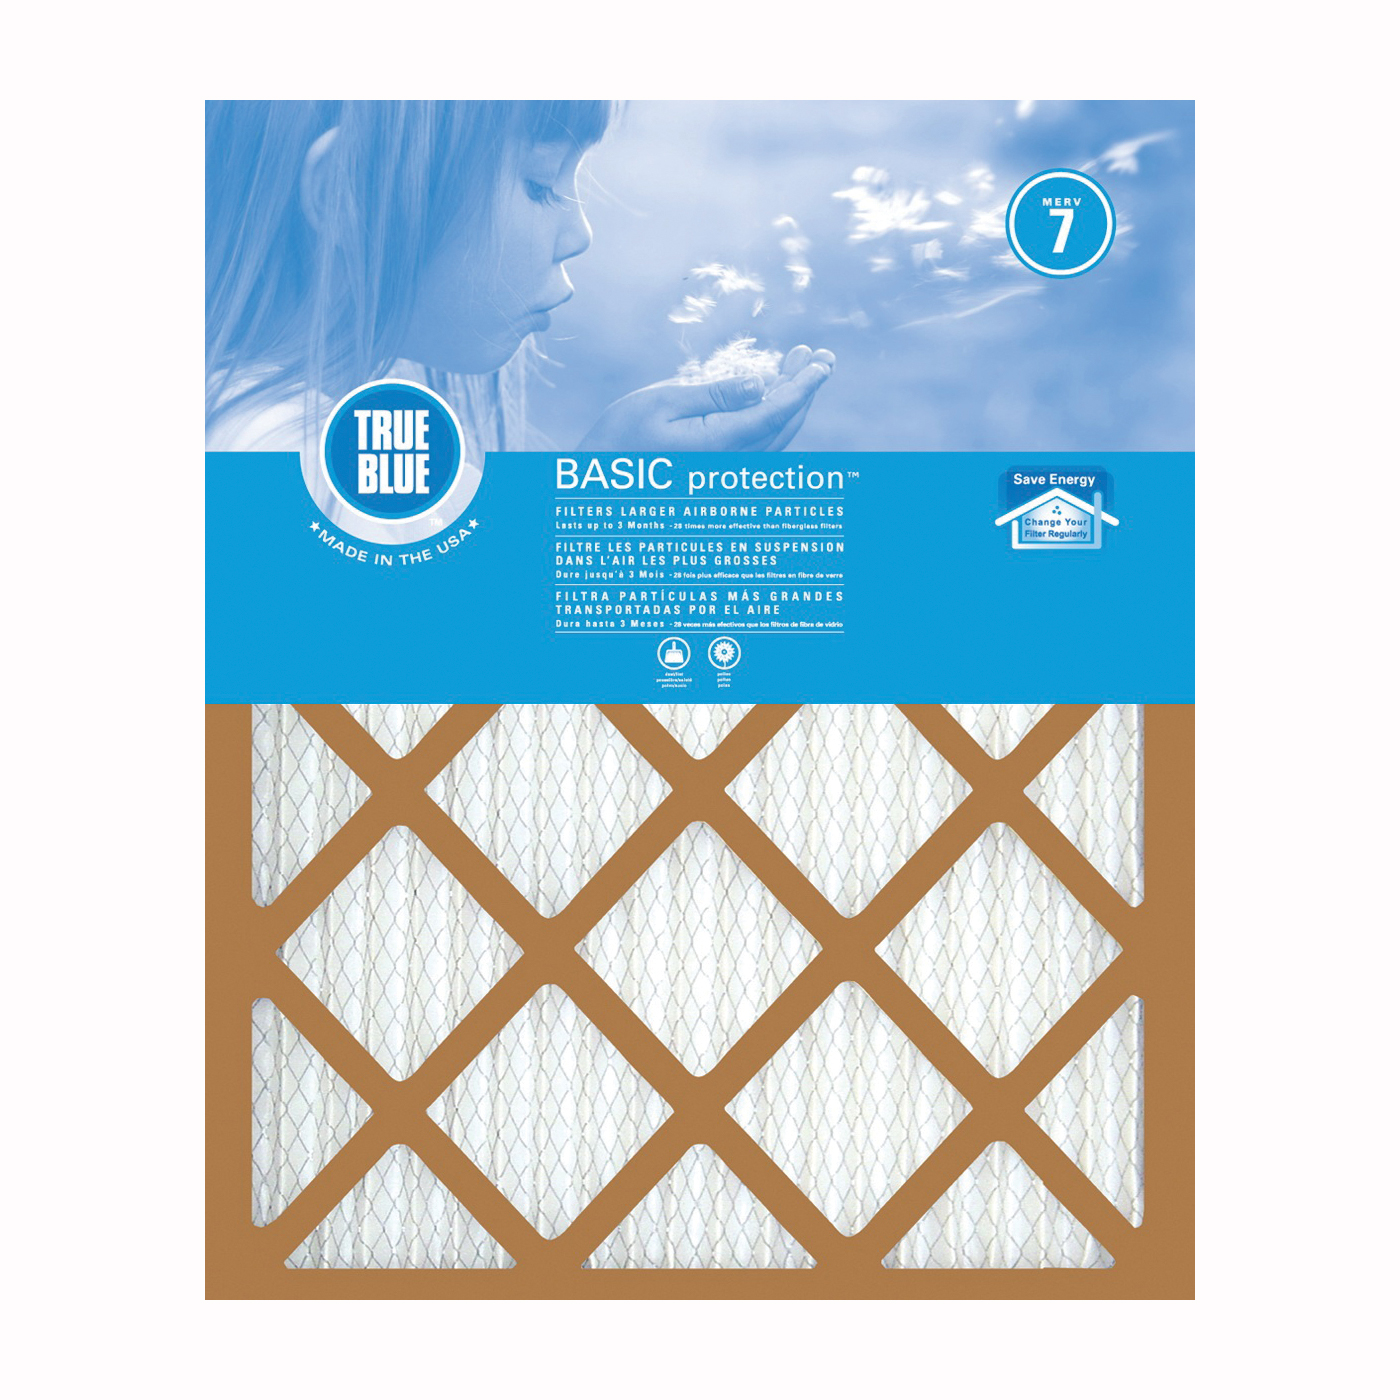 Picture of True Blue 214241 Air Filter, 24 in L, 14 in W, 7 MERV, 53.7 % Filter Efficiency, Synthetic Pleated Filter Media